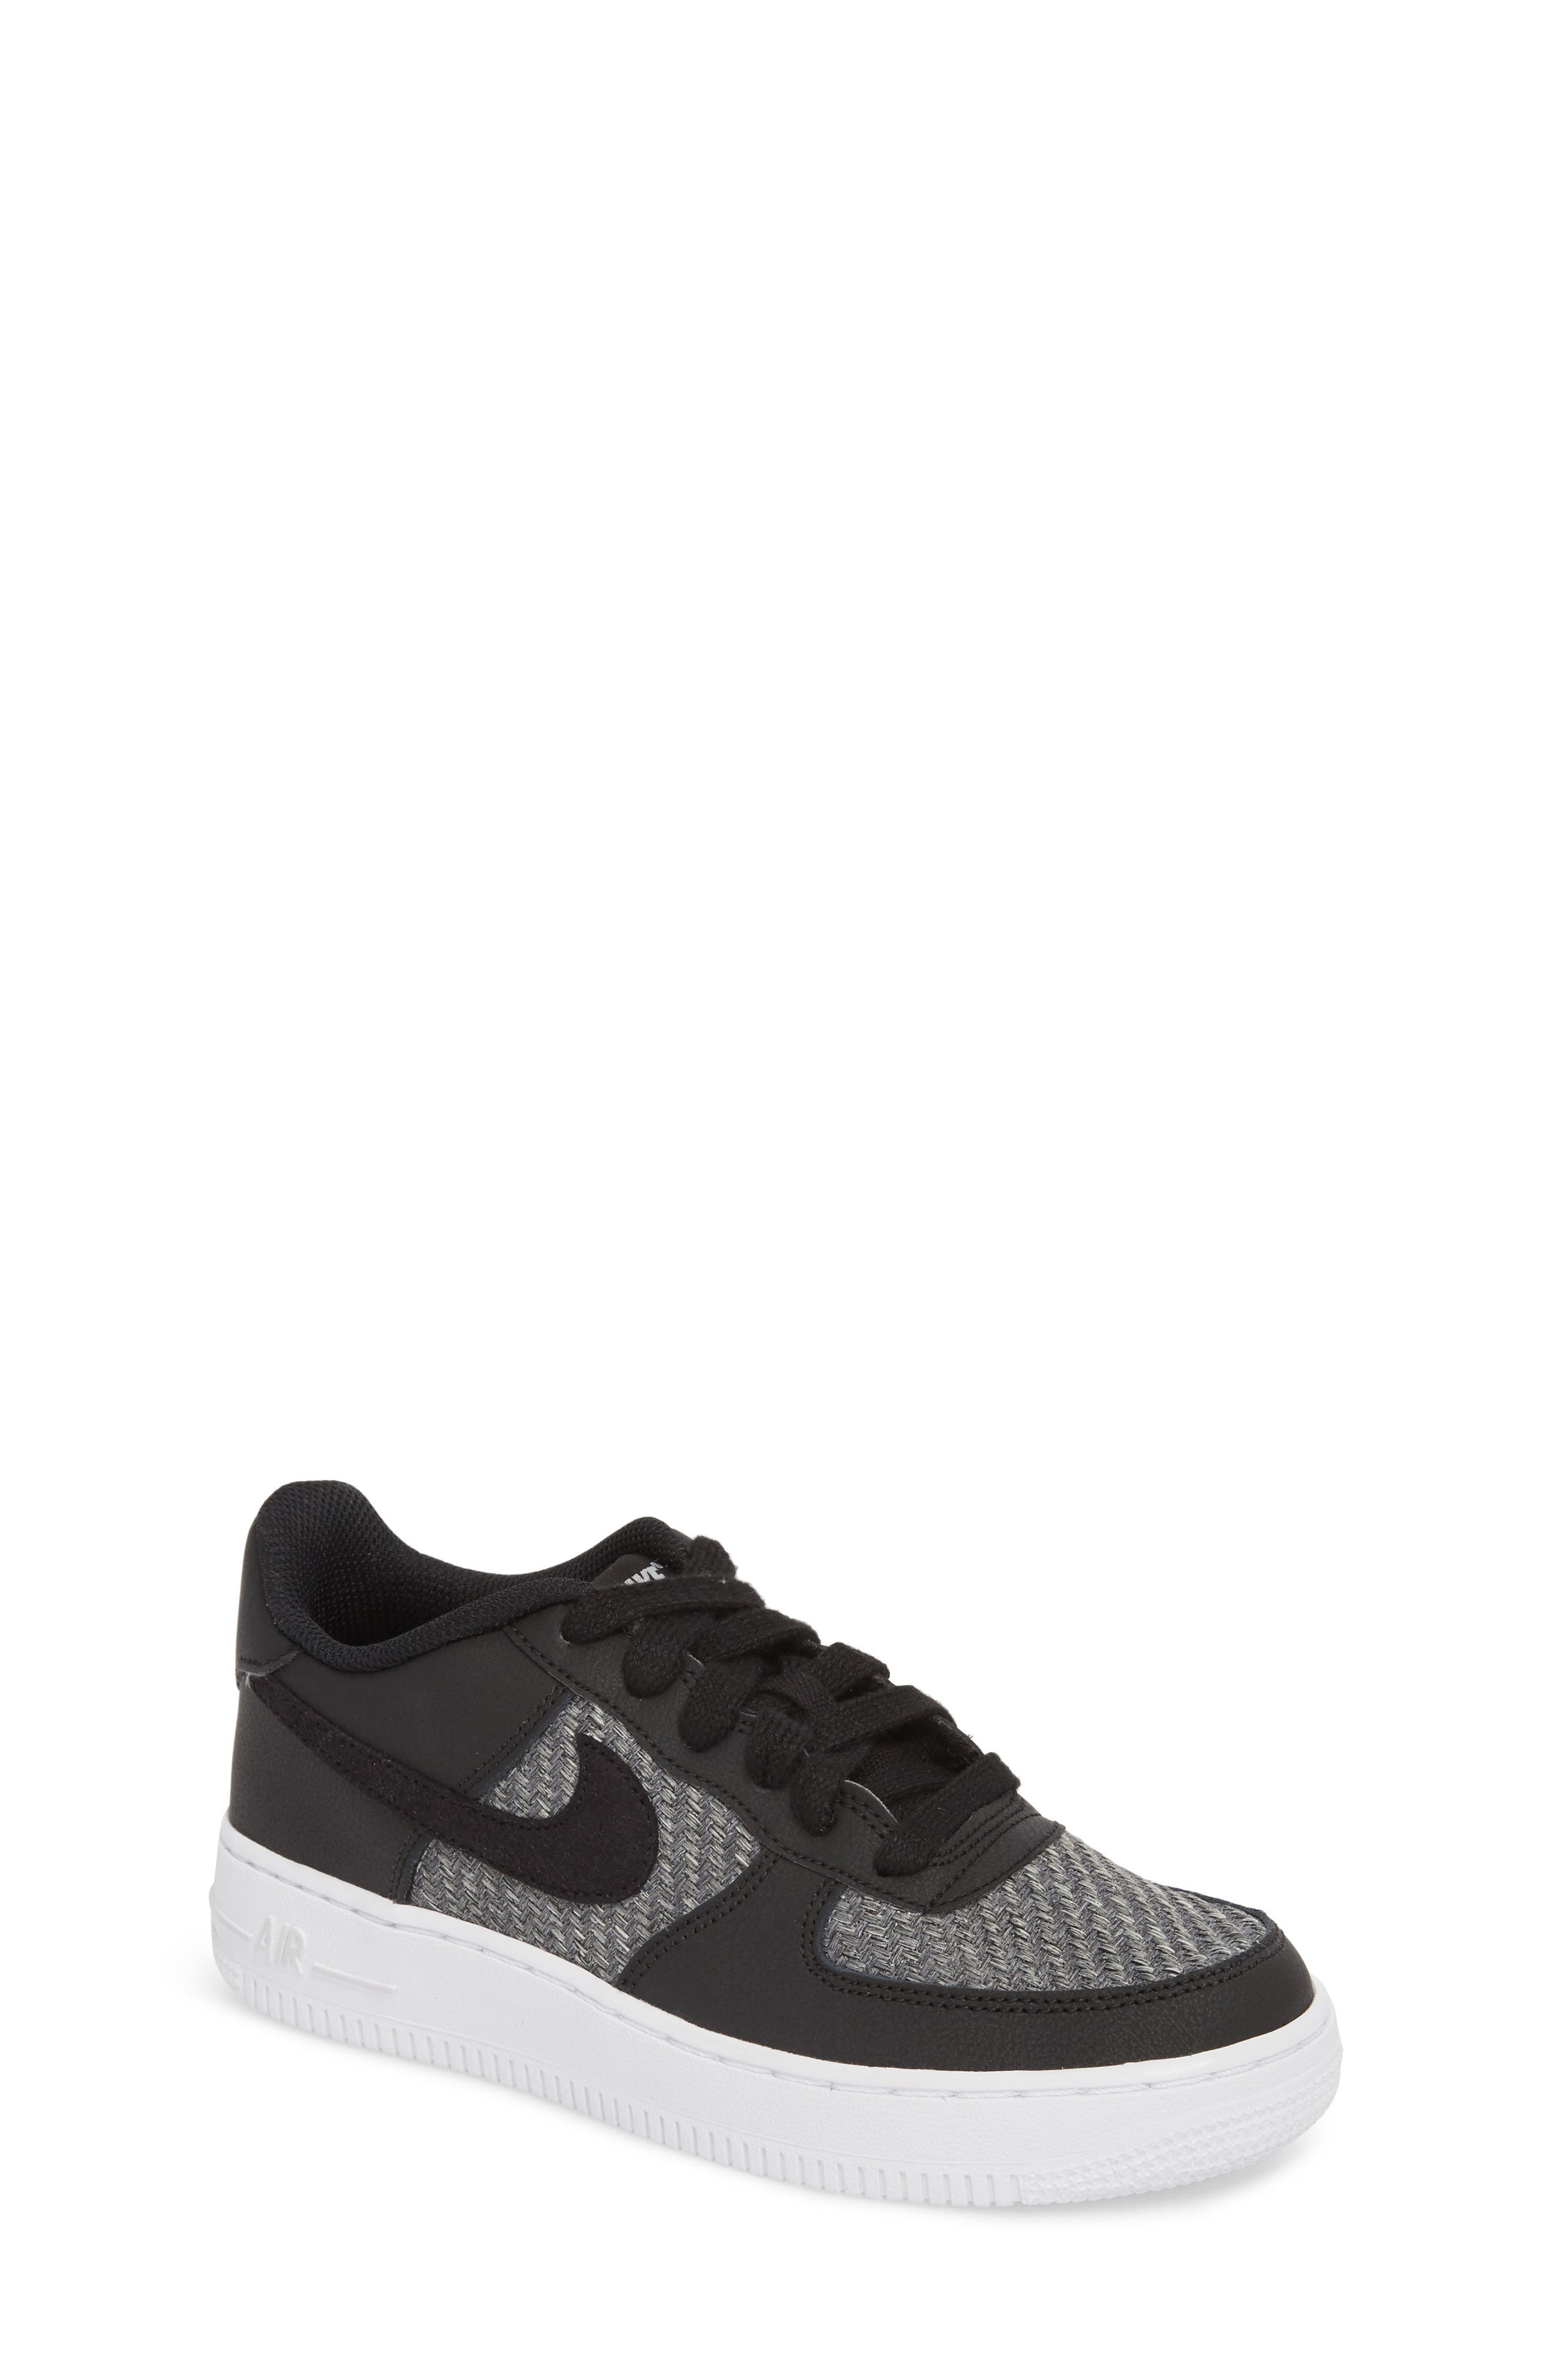 Air Force 1 LV8 Sneaker,                         Main,                         color, BLACK/ BLACK/ GREY/ WHITE